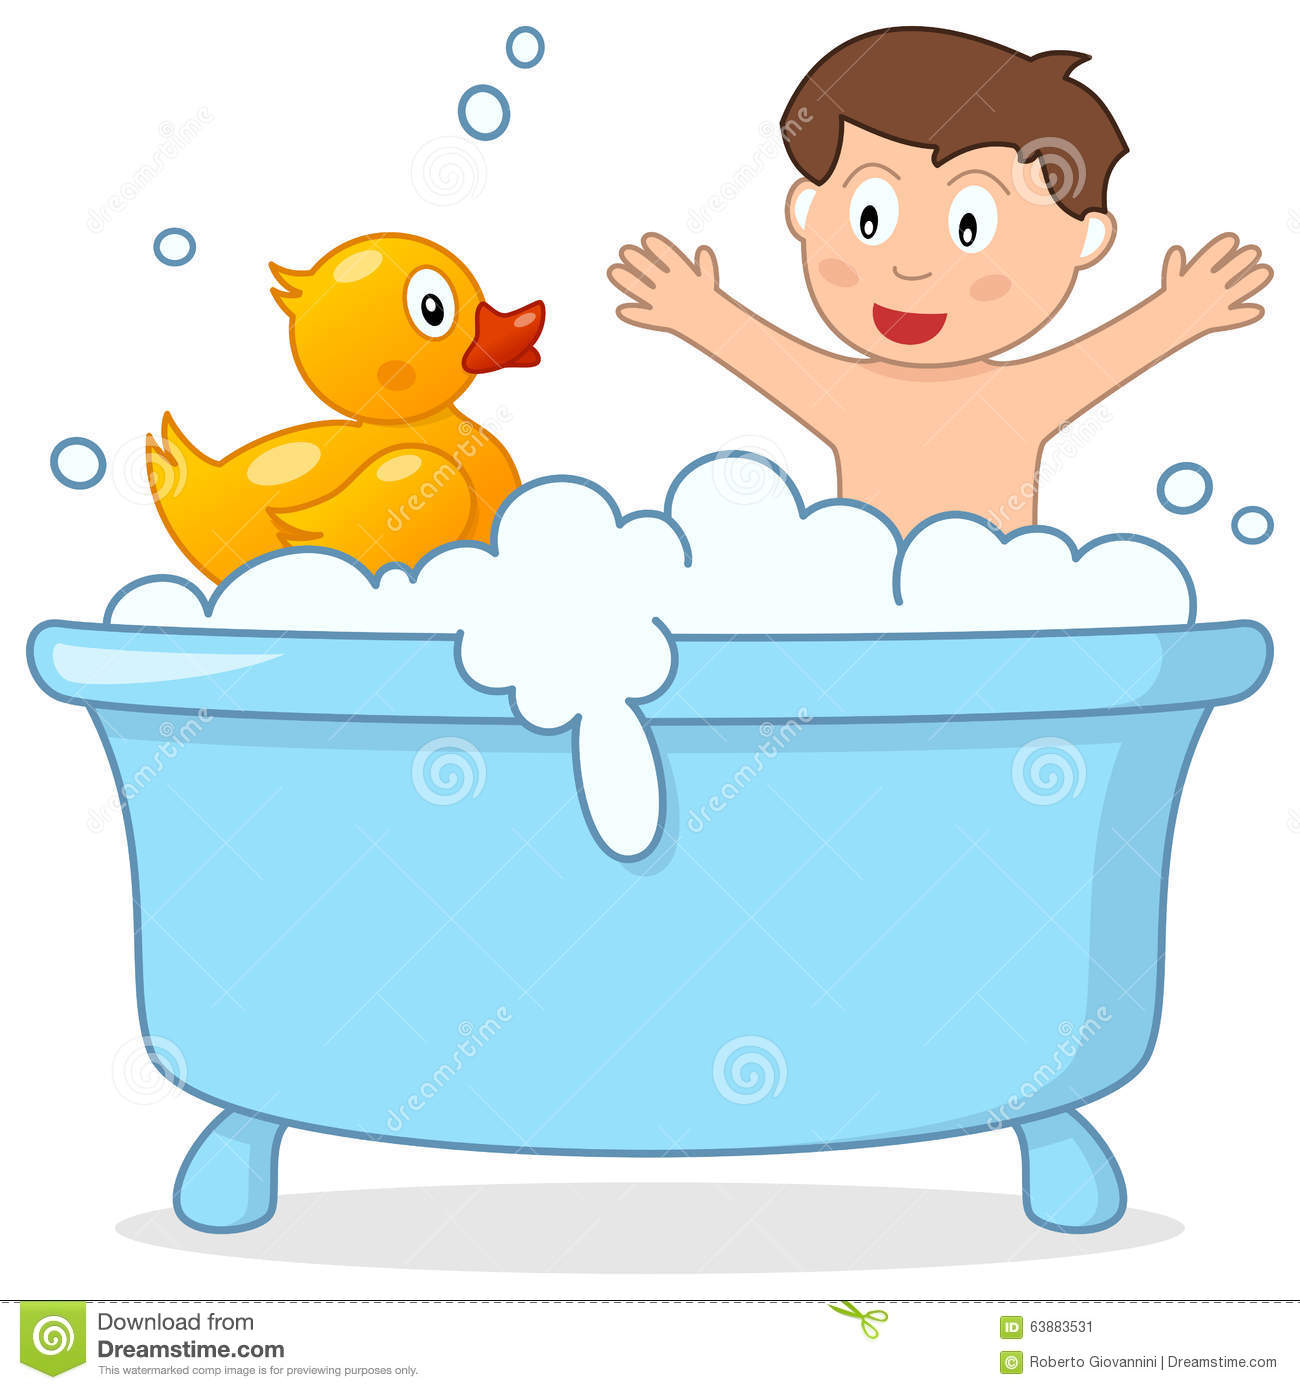 Boy bath clipart.